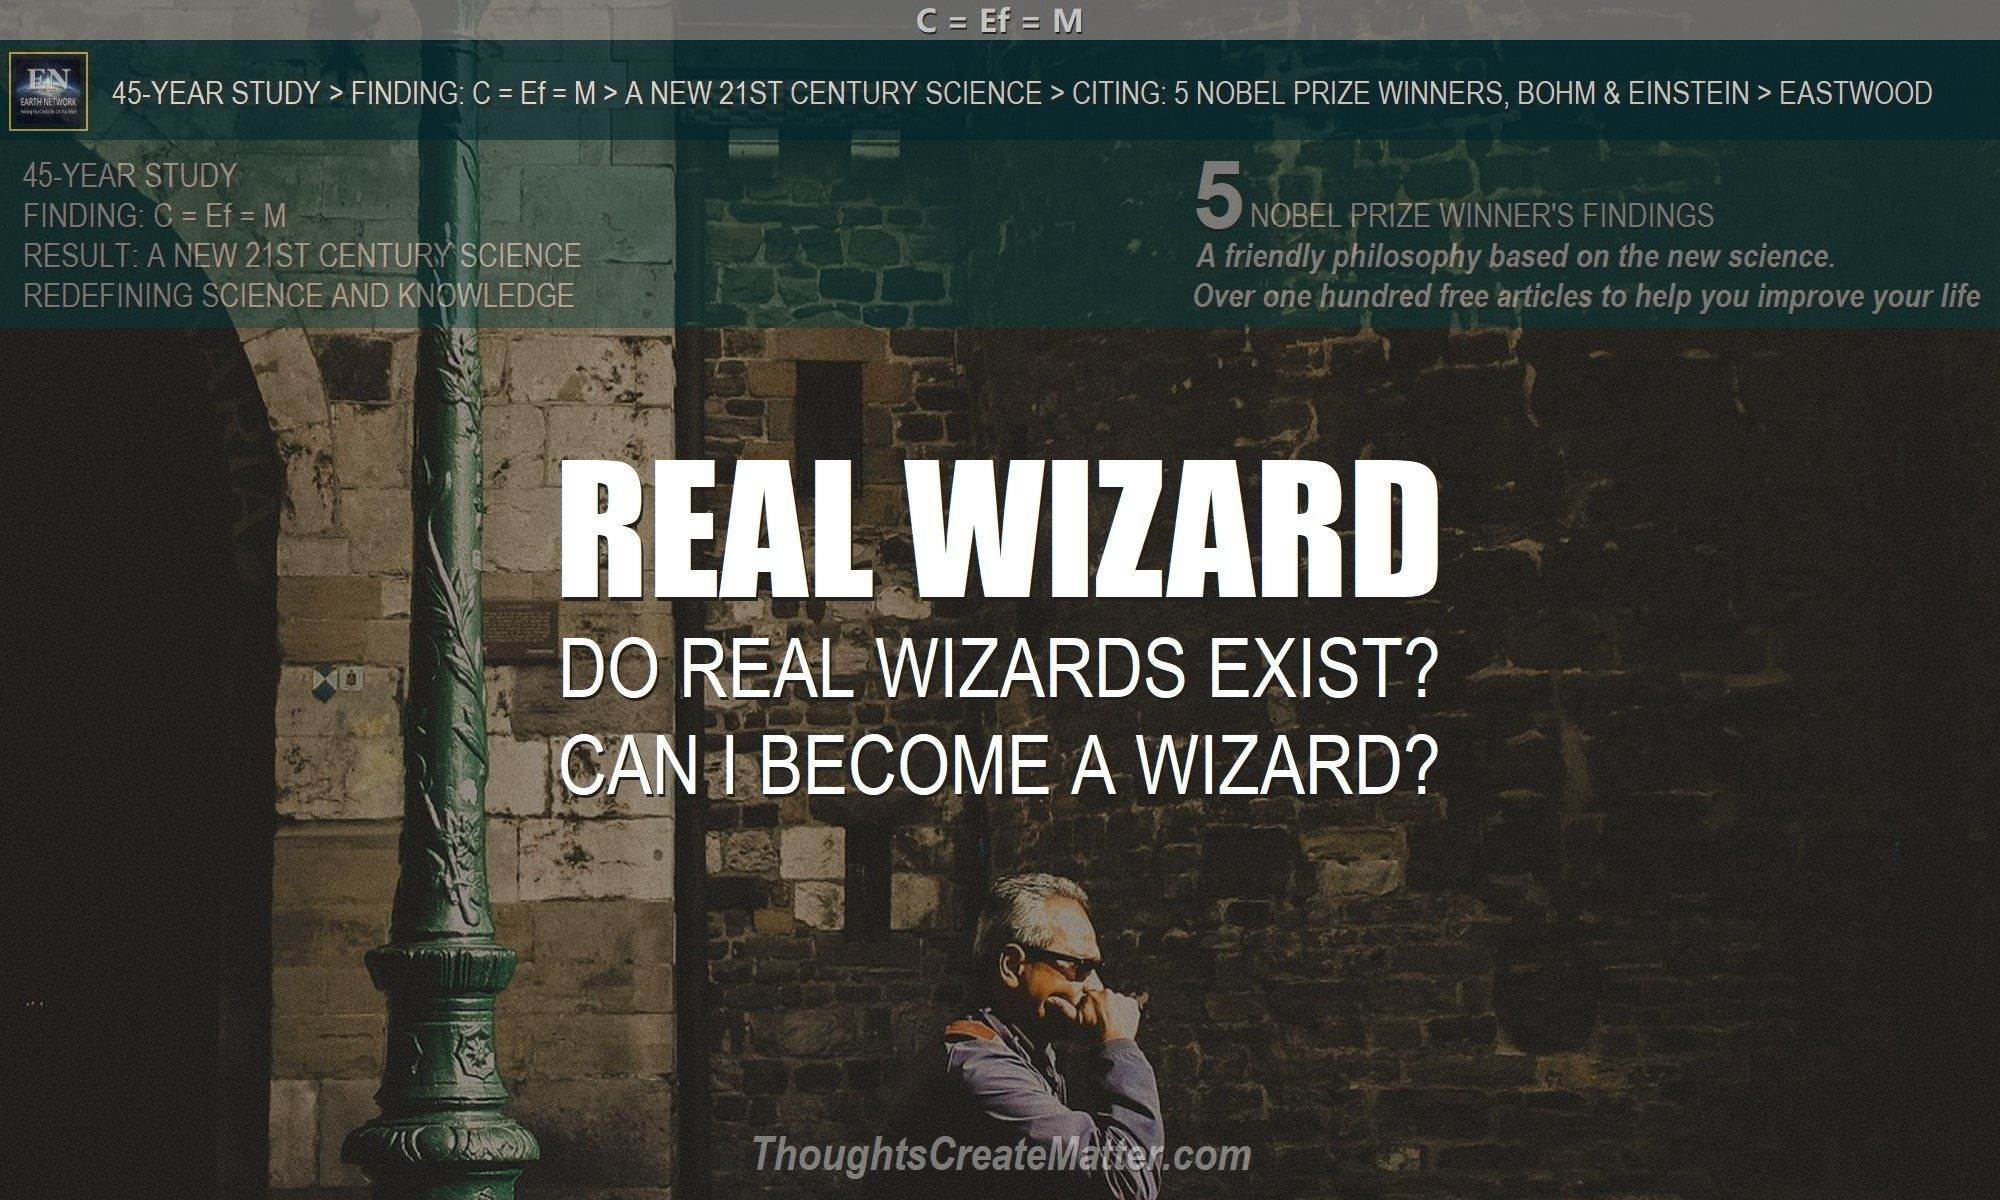 A man who is a real wizard depicts how you can become a real wizard.